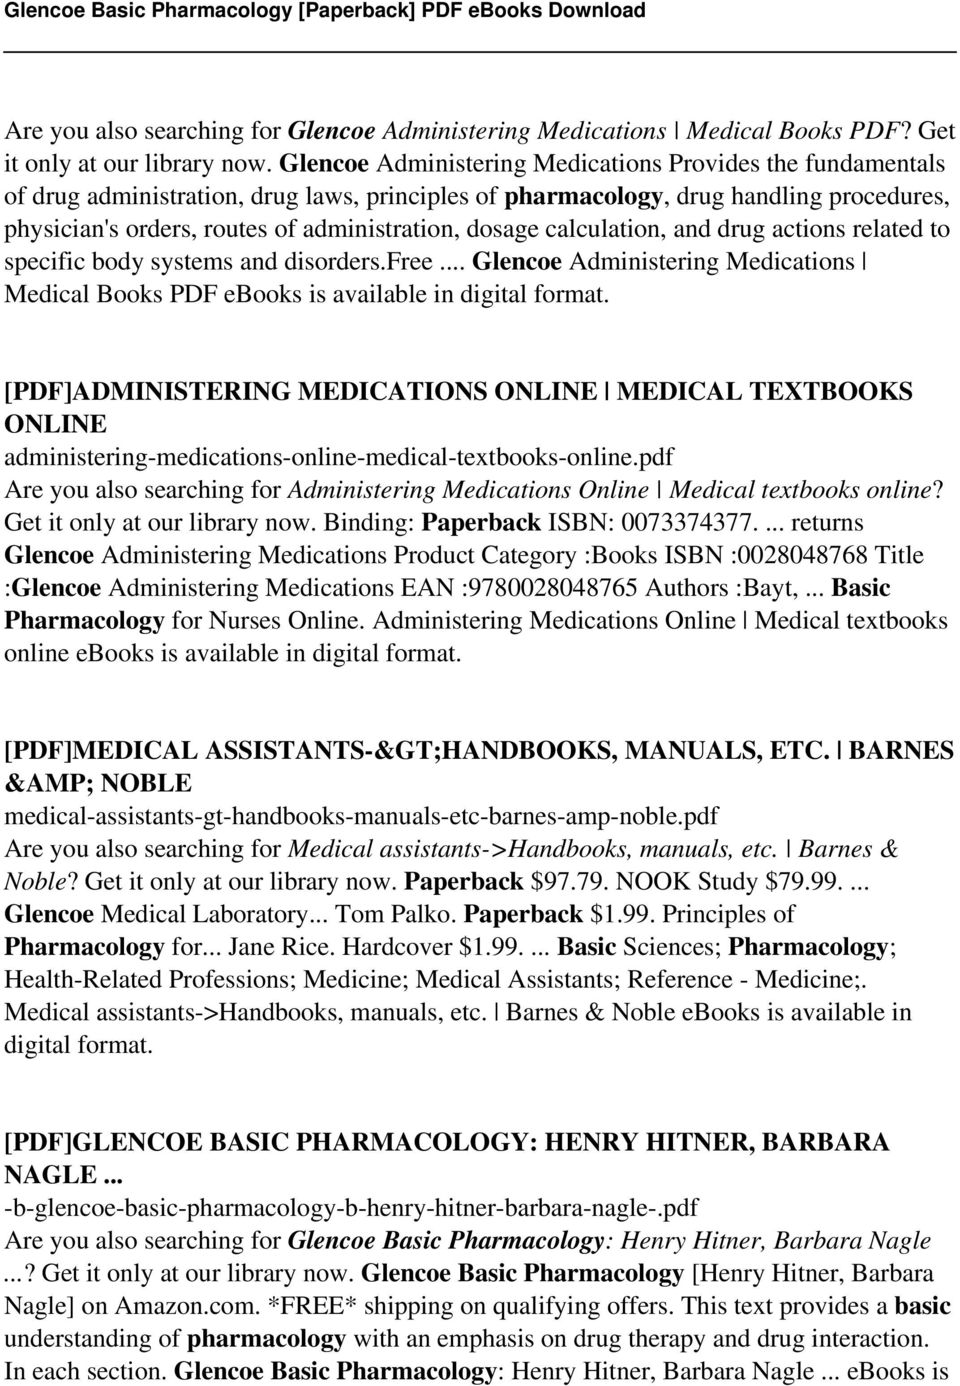 Glencoe basic pharmacology paperback pdf pdf dosage calculation and drug actions related to specific body systems and disordersee fandeluxe Choice Image